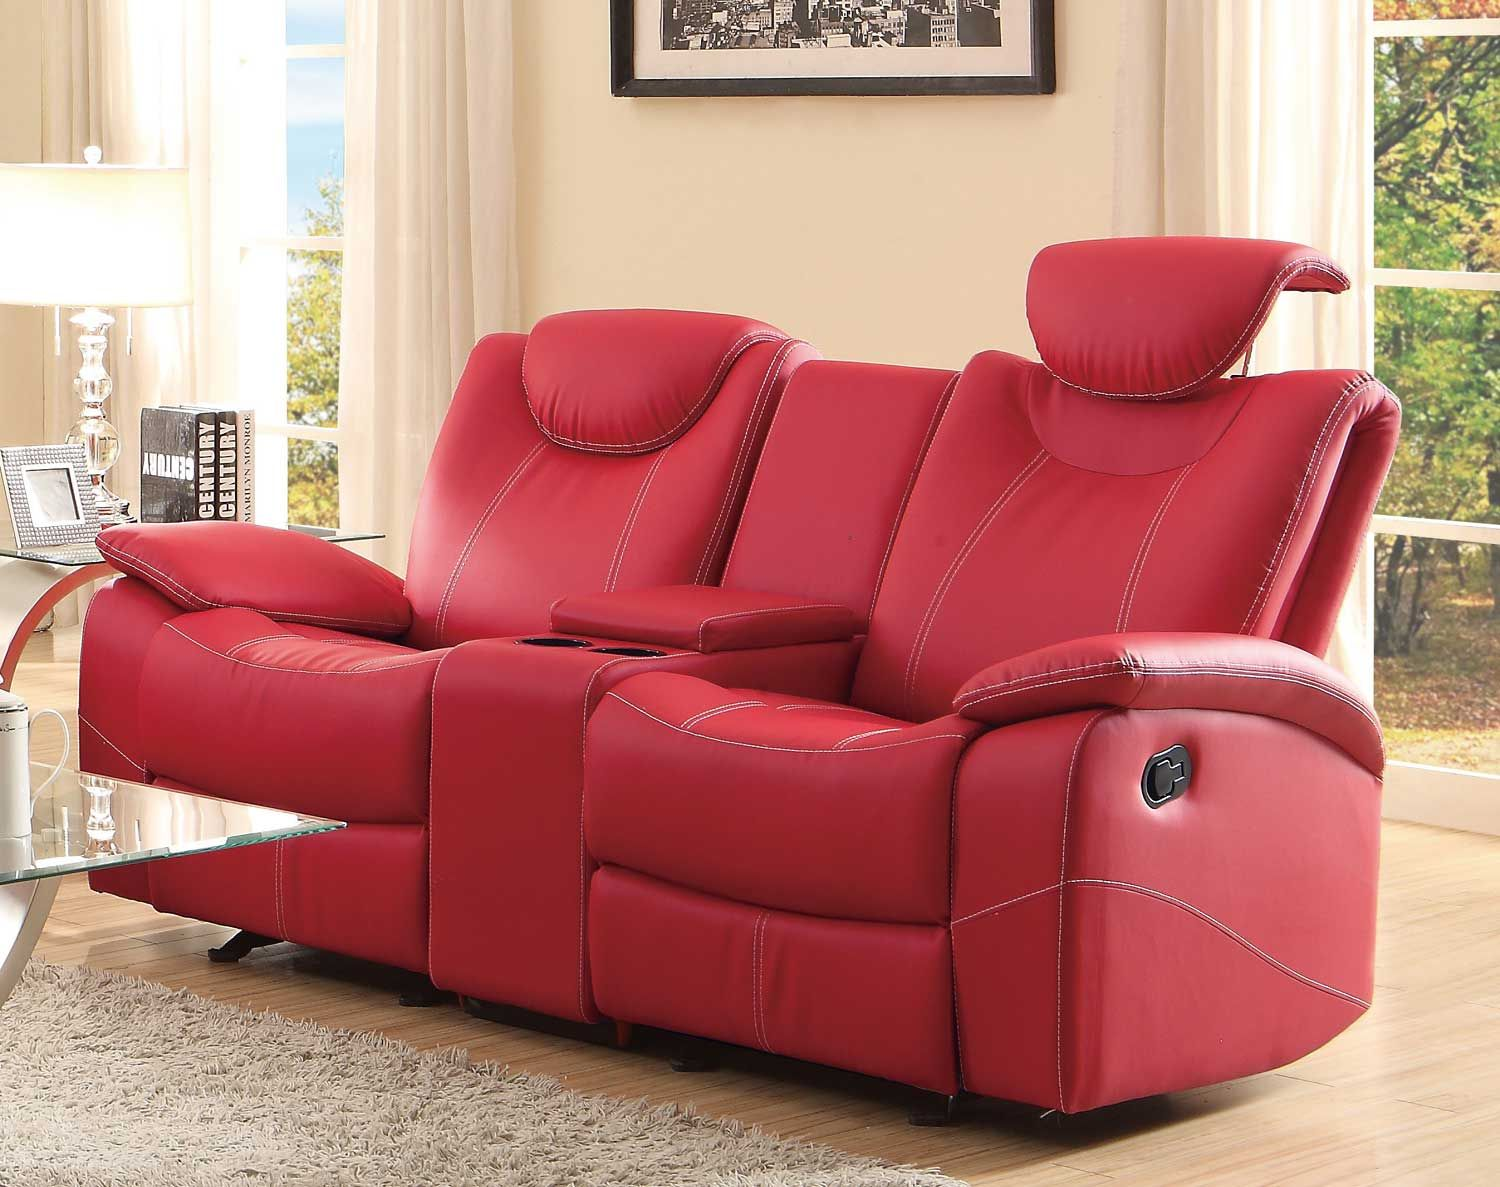 Pin By Rebeccarcahill On Sofa Furniture Recliner Reclining Sofa